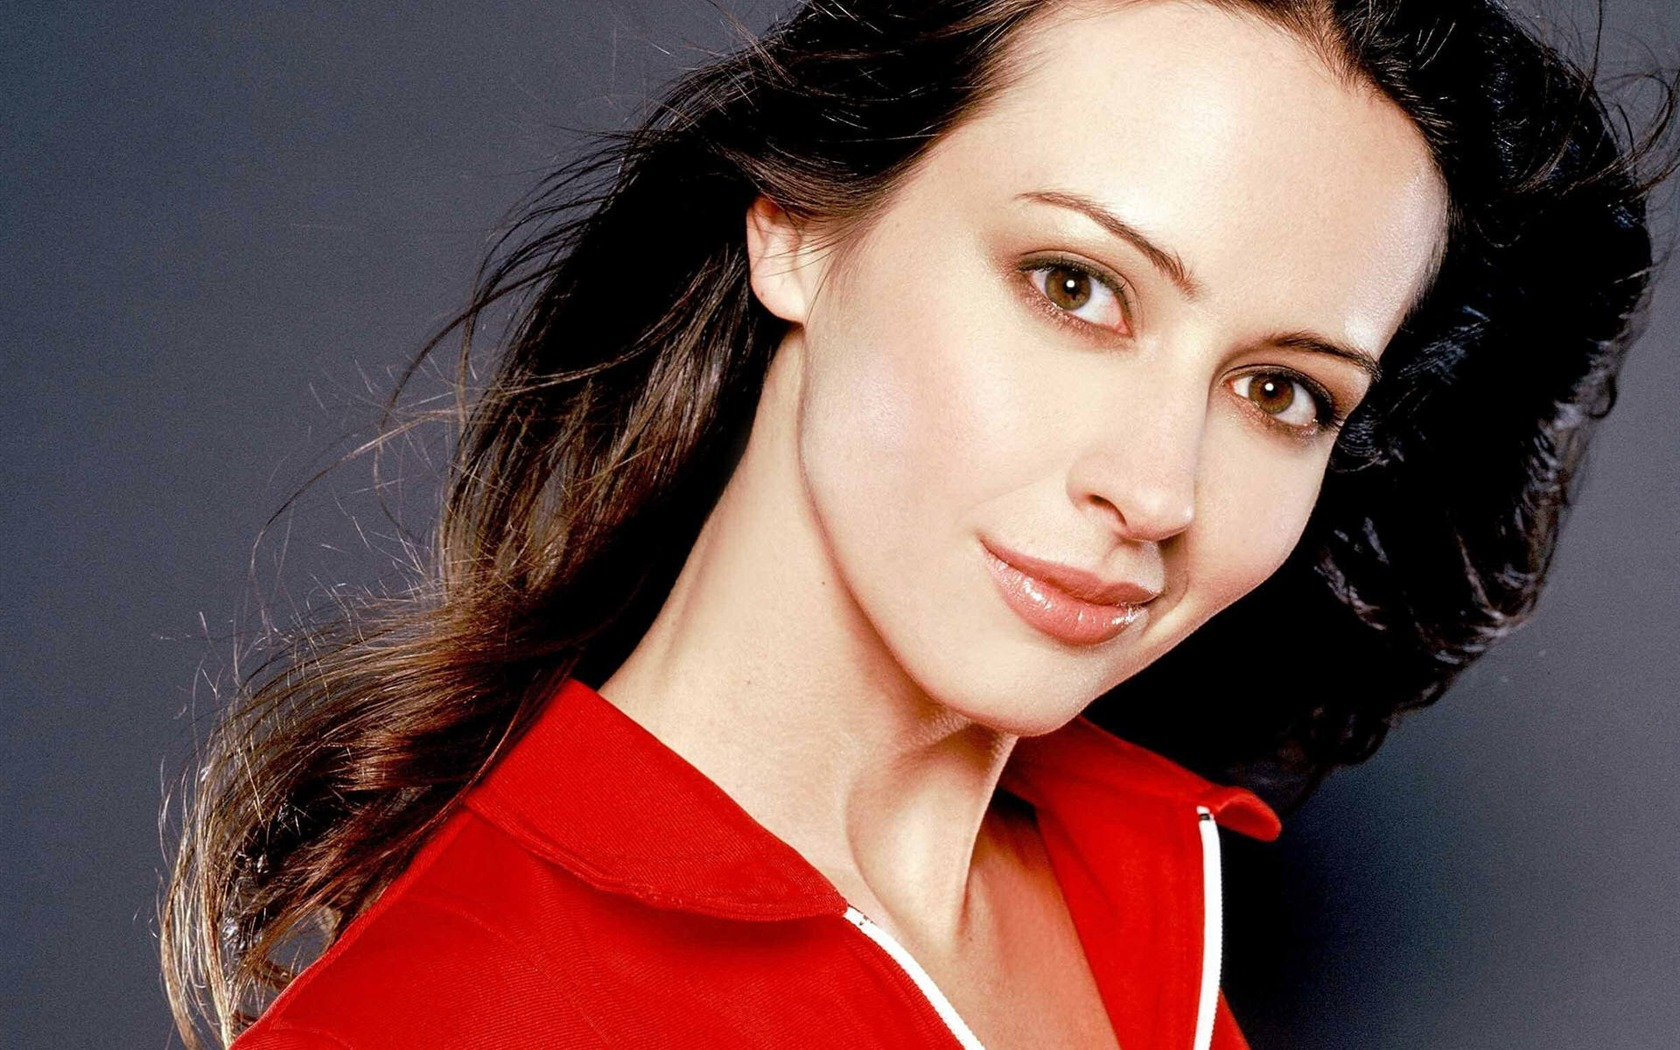 Amy Acker #002 - 1680x1050 Wallpapers Pictures Photos Images